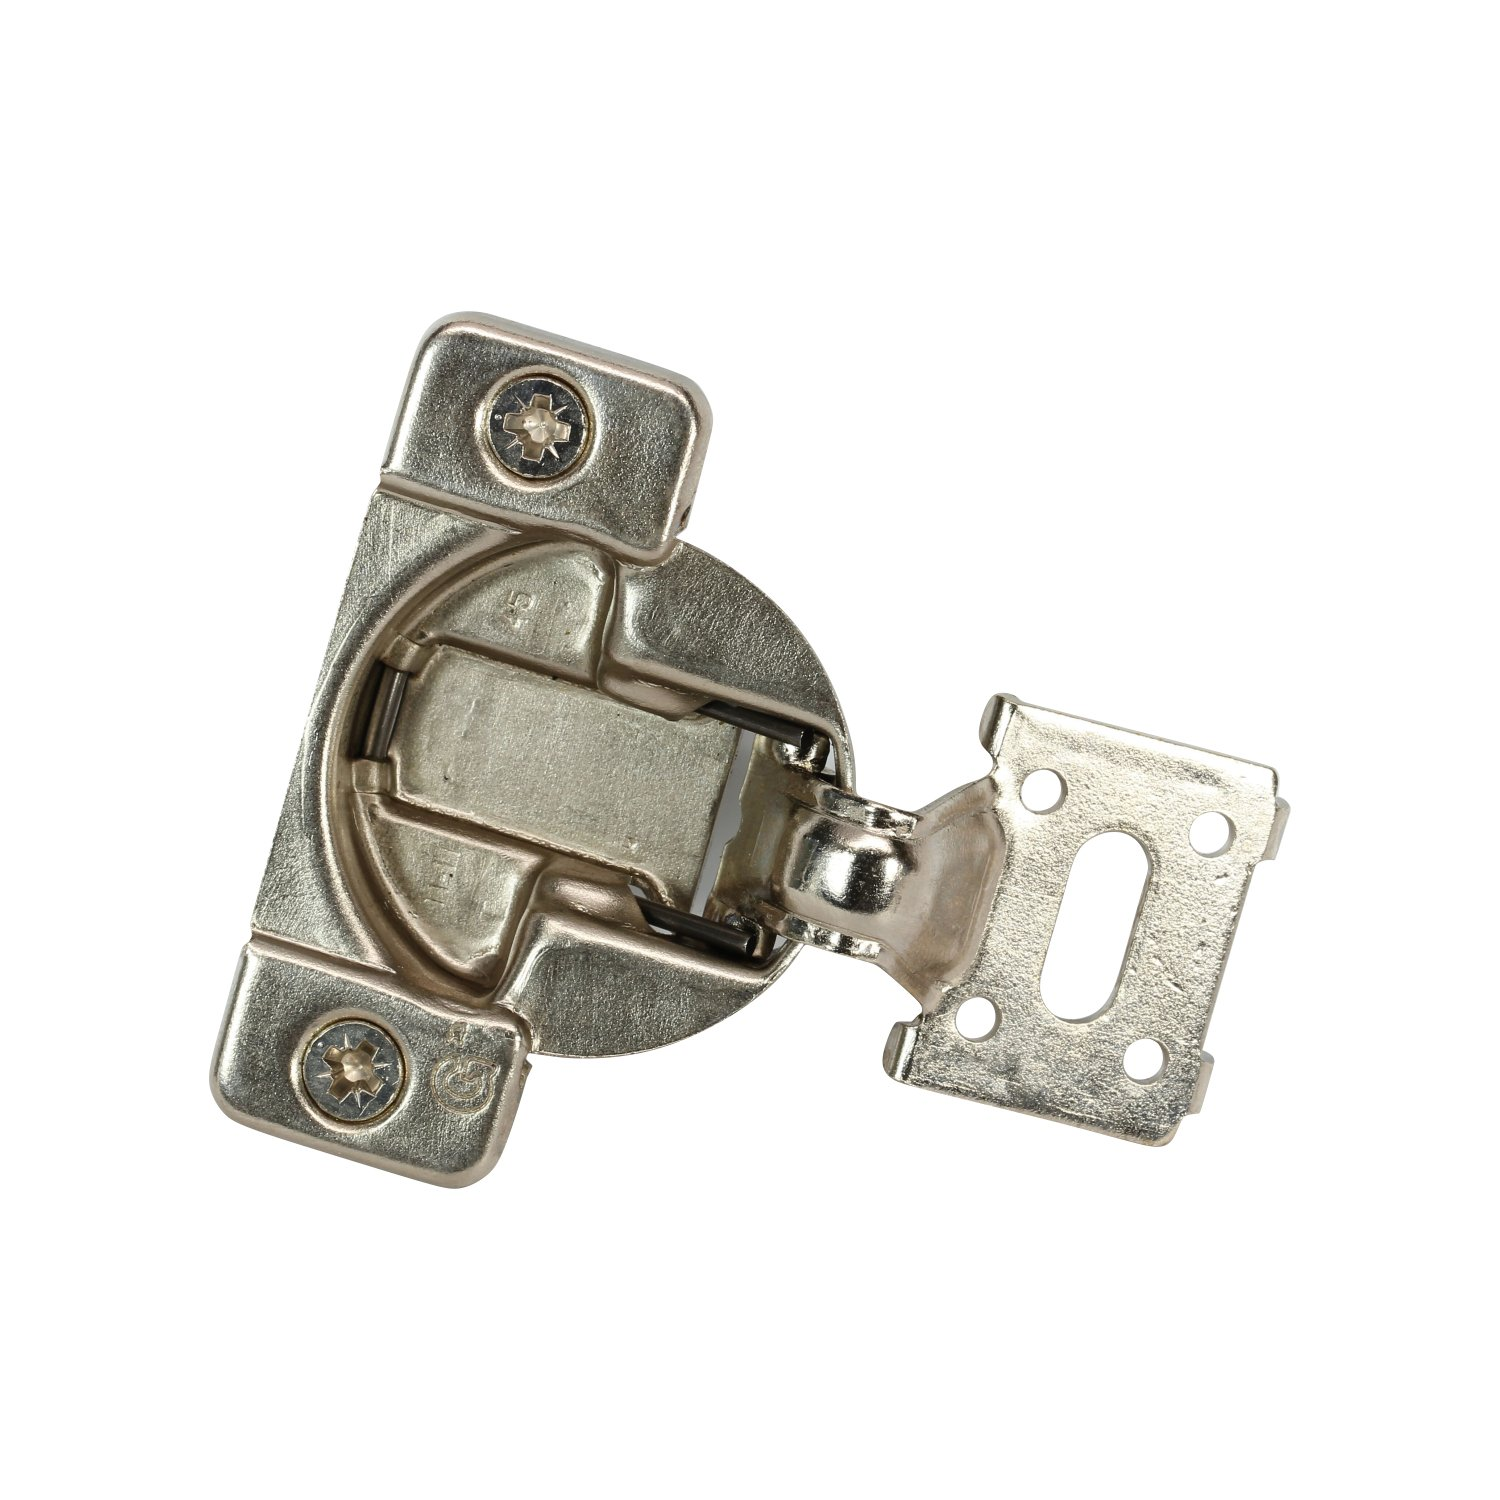 50 Pack Rok Hardware Grass TEC 861 108 Degree 7/16'' Overlay Self Close Press in Dowel Compact Cabinet Hinge 04728-16 45mm Boring Pattern